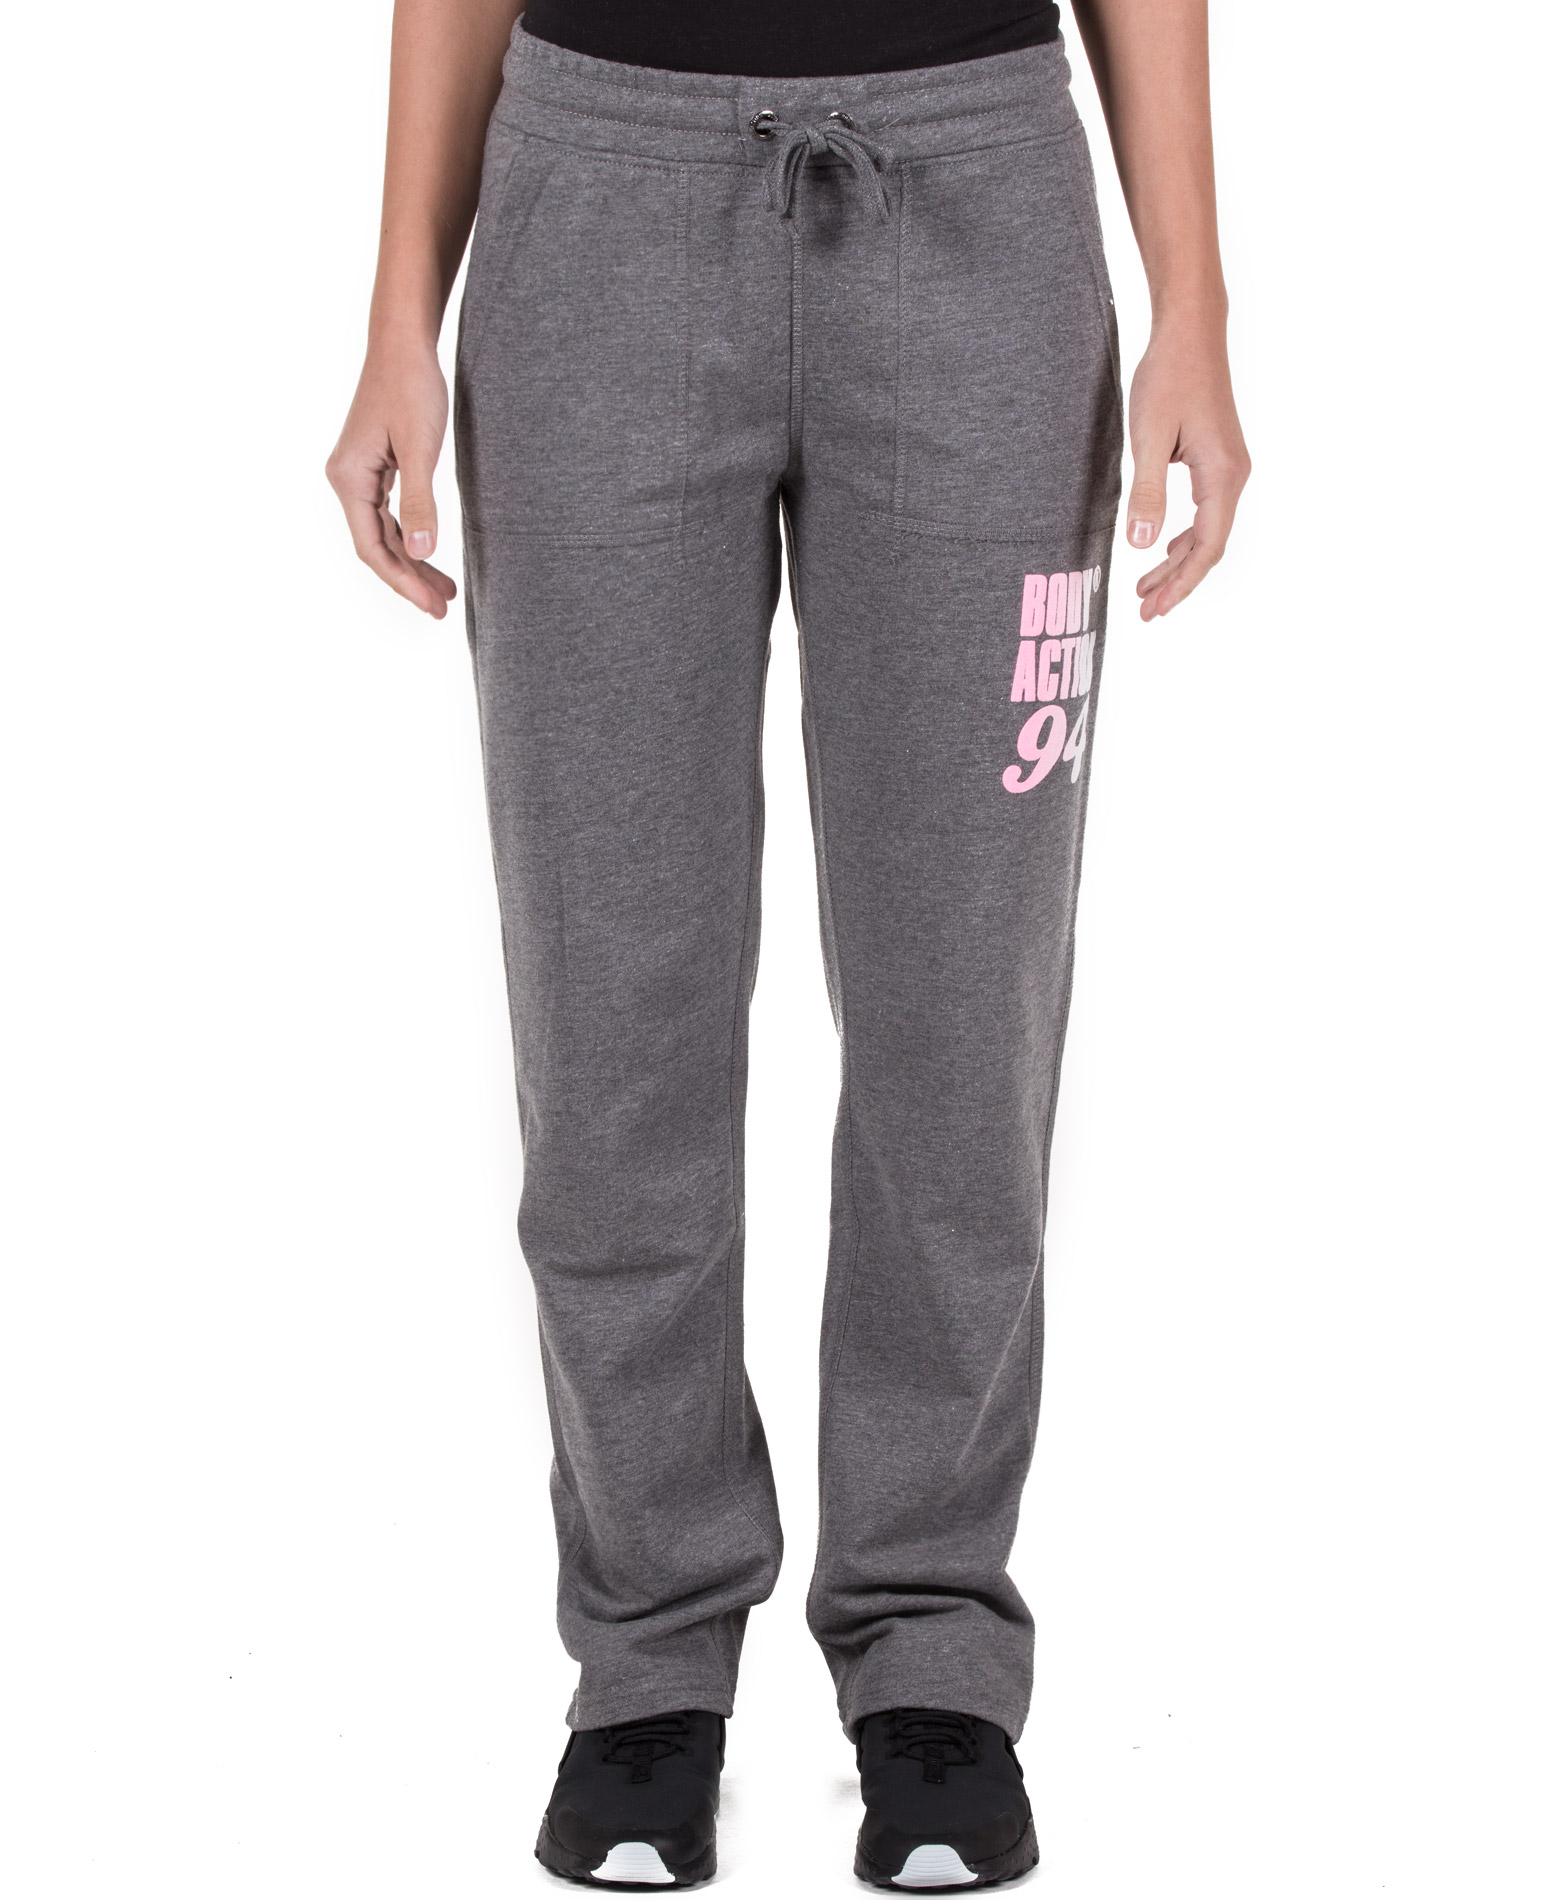 BODY ACTION WOMEN'S SWEATPANTS 021740-01-03Ε Ανθρακί